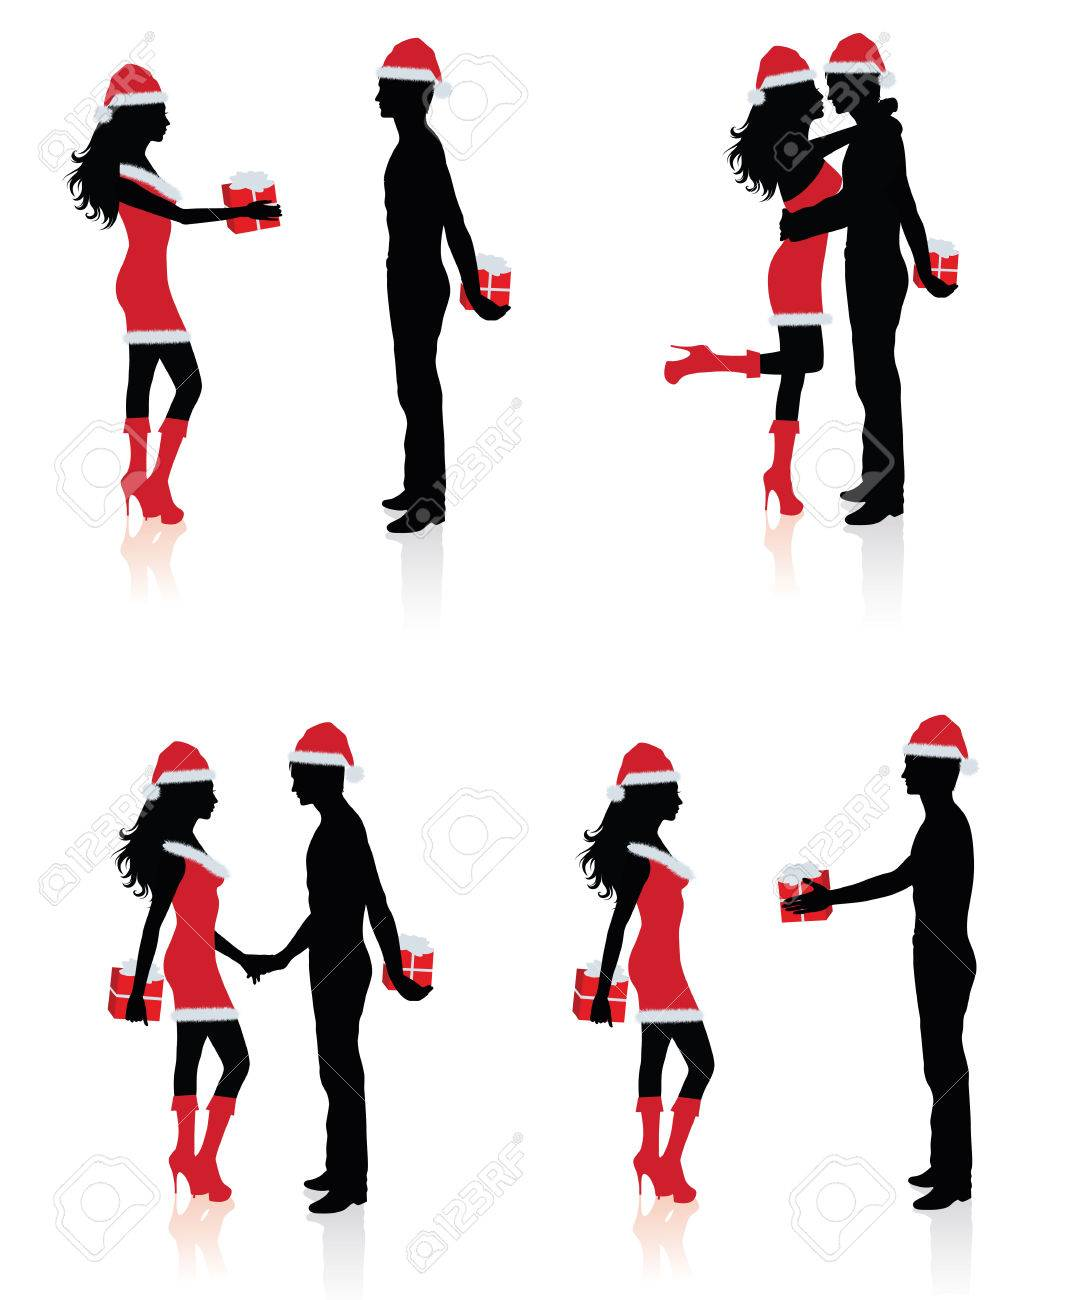 Collections of silhouettes of couples giving each other presents. Stock Vector - 6022389